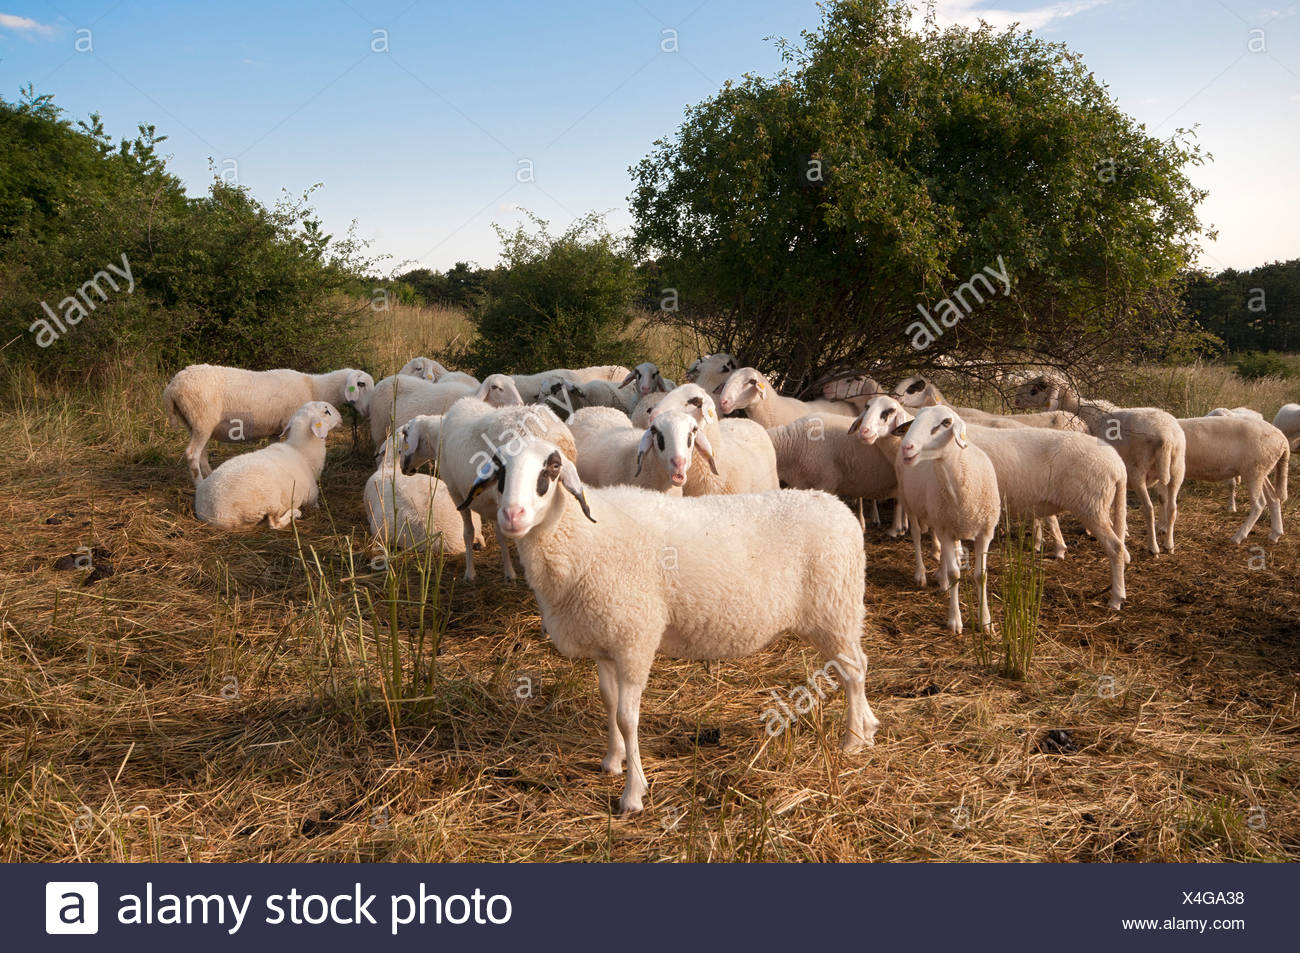 Domestic sheep for heath preservation, Perchtoldsdorf Heath, Perchtoldsdorf, Lower Austria, Austria, Europe - Stock Image